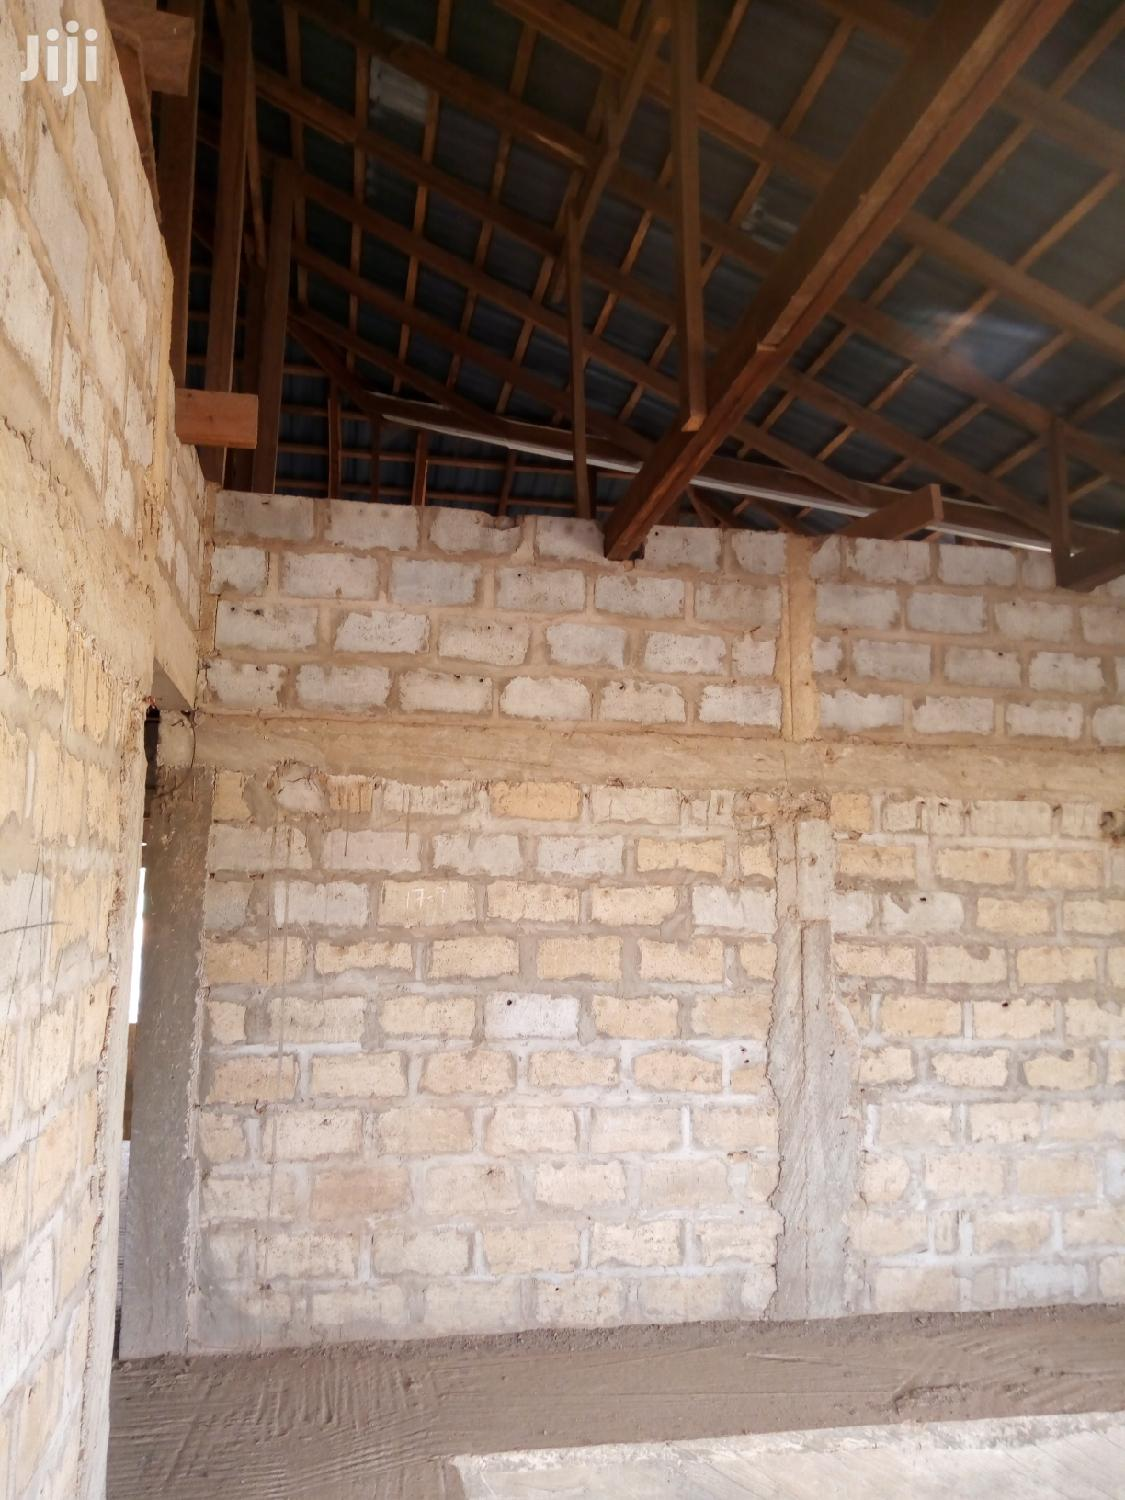 5 Bedrooms Uncompleted Storey For Sale At Tantra Hills Near Snit Flats | Houses & Apartments For Sale for sale in Achimota, Greater Accra, Ghana